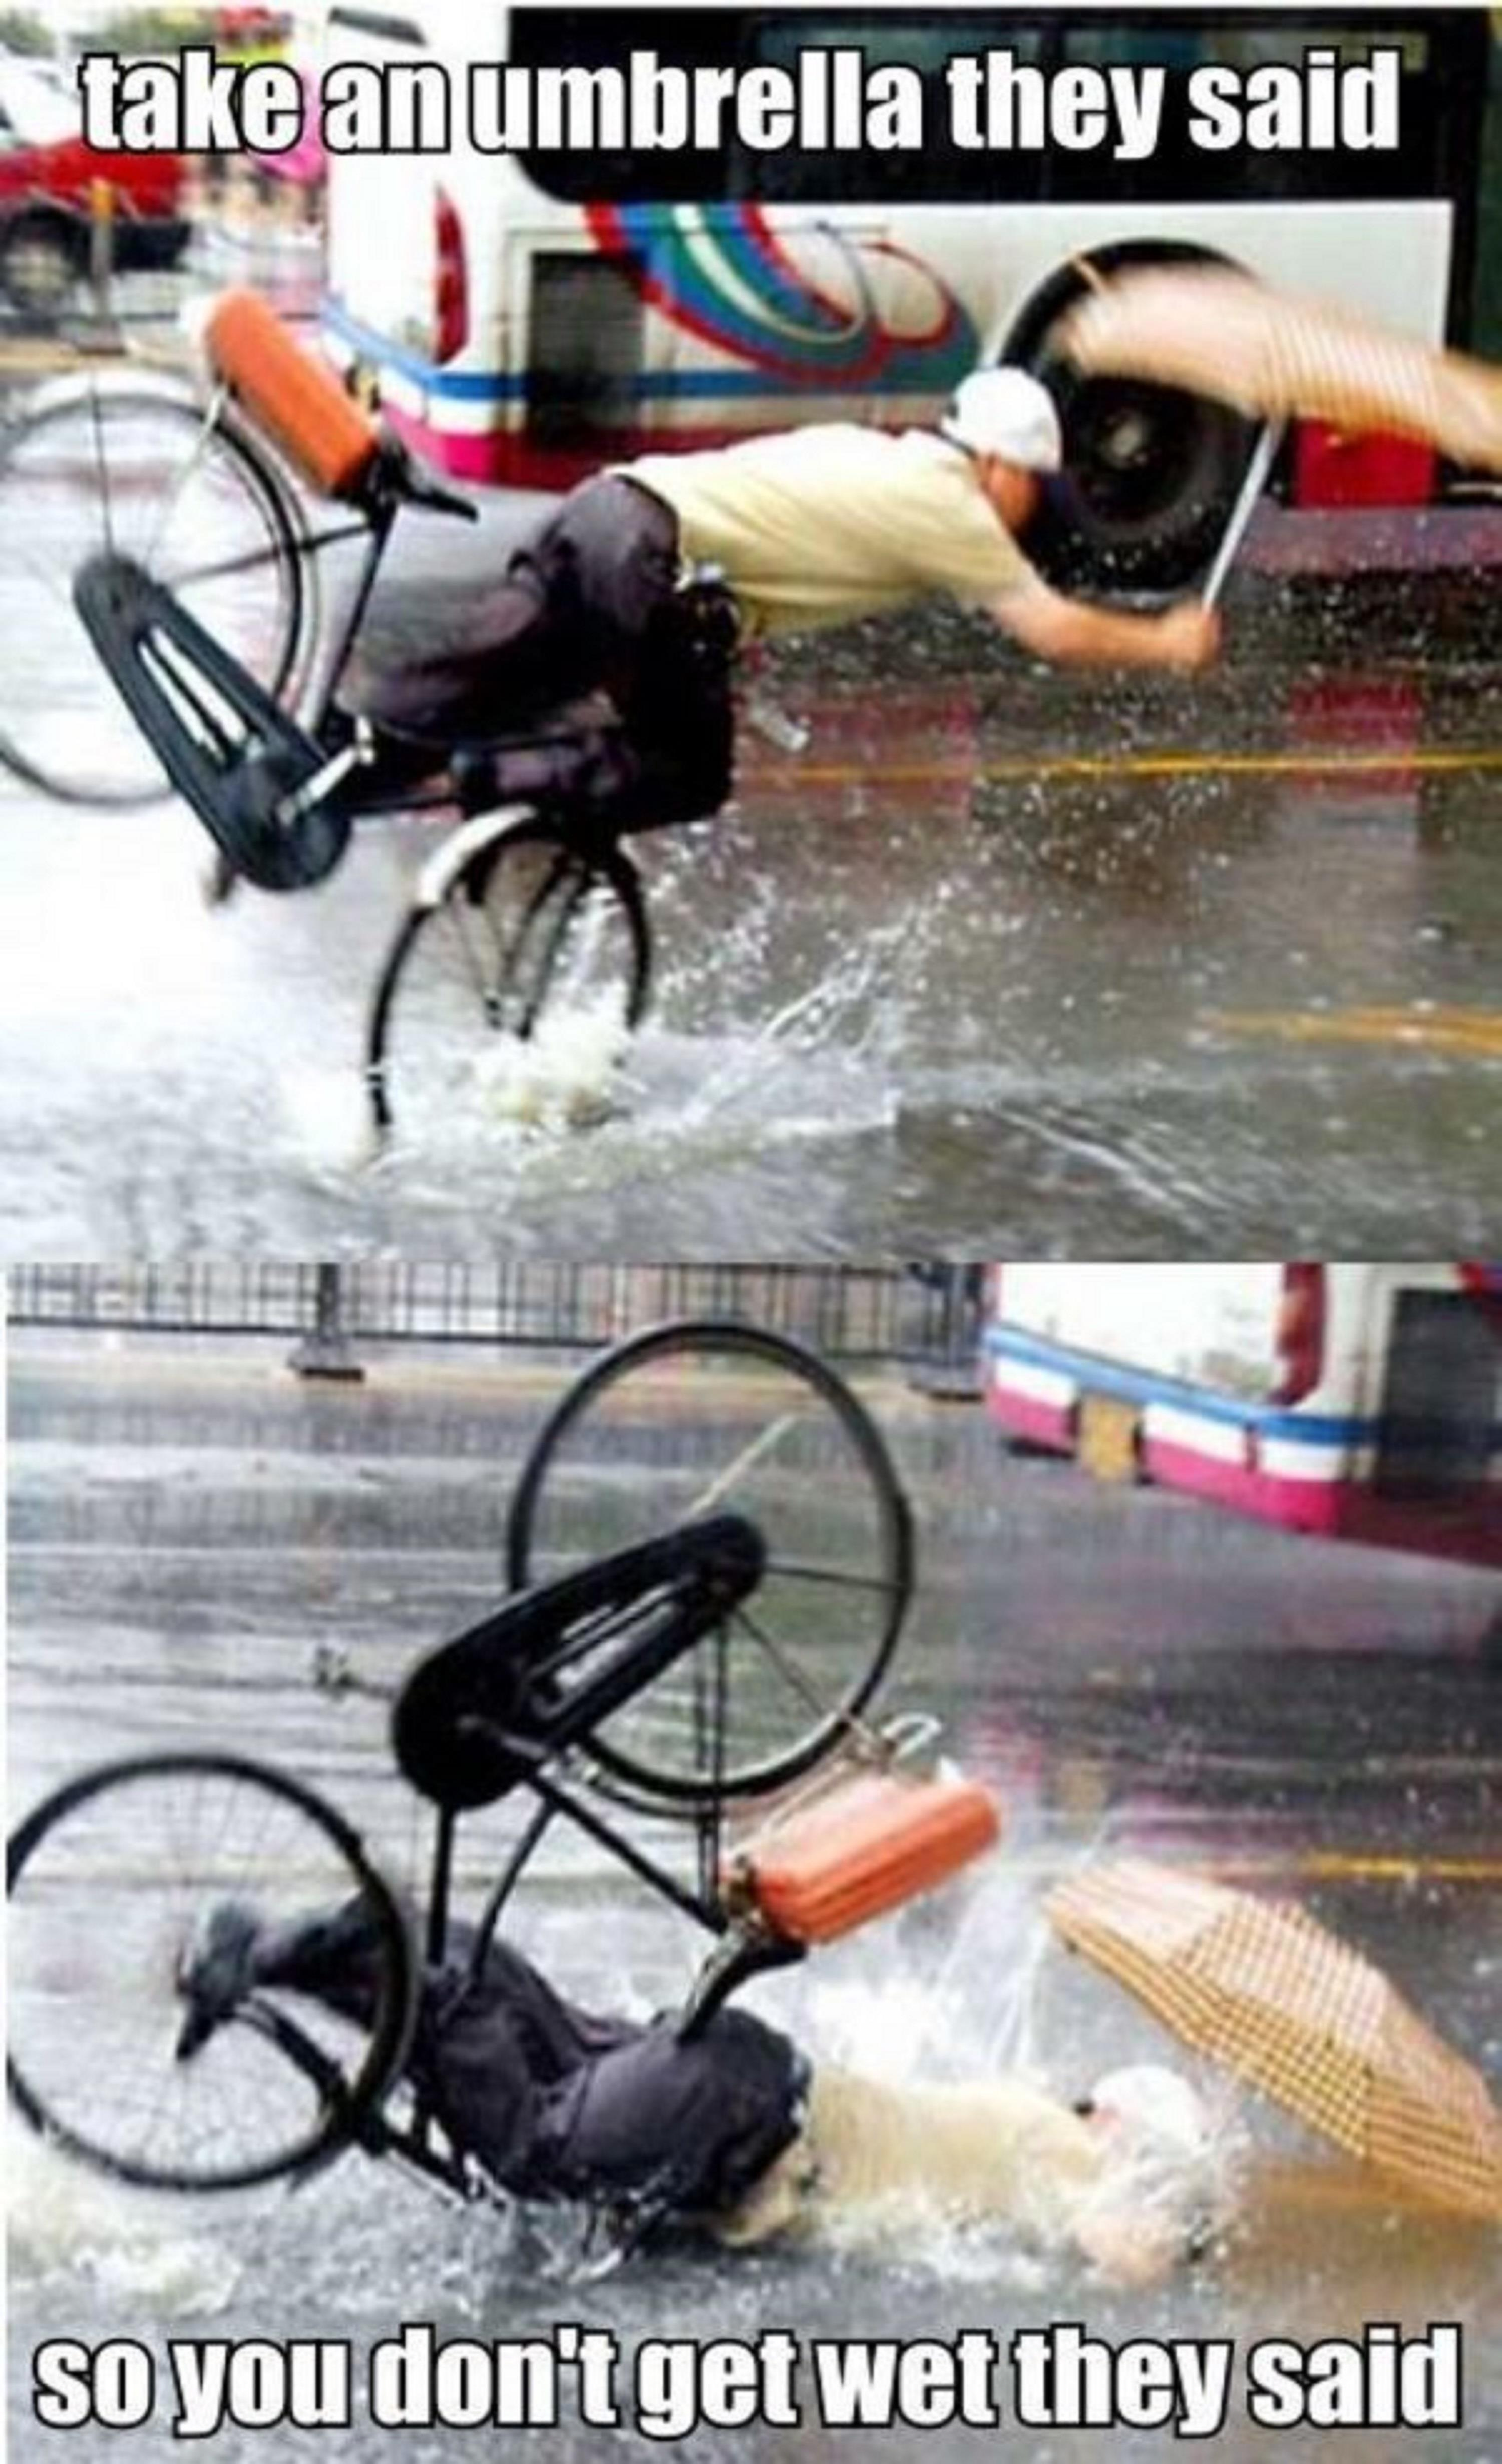 funny picture get an umbrella they said